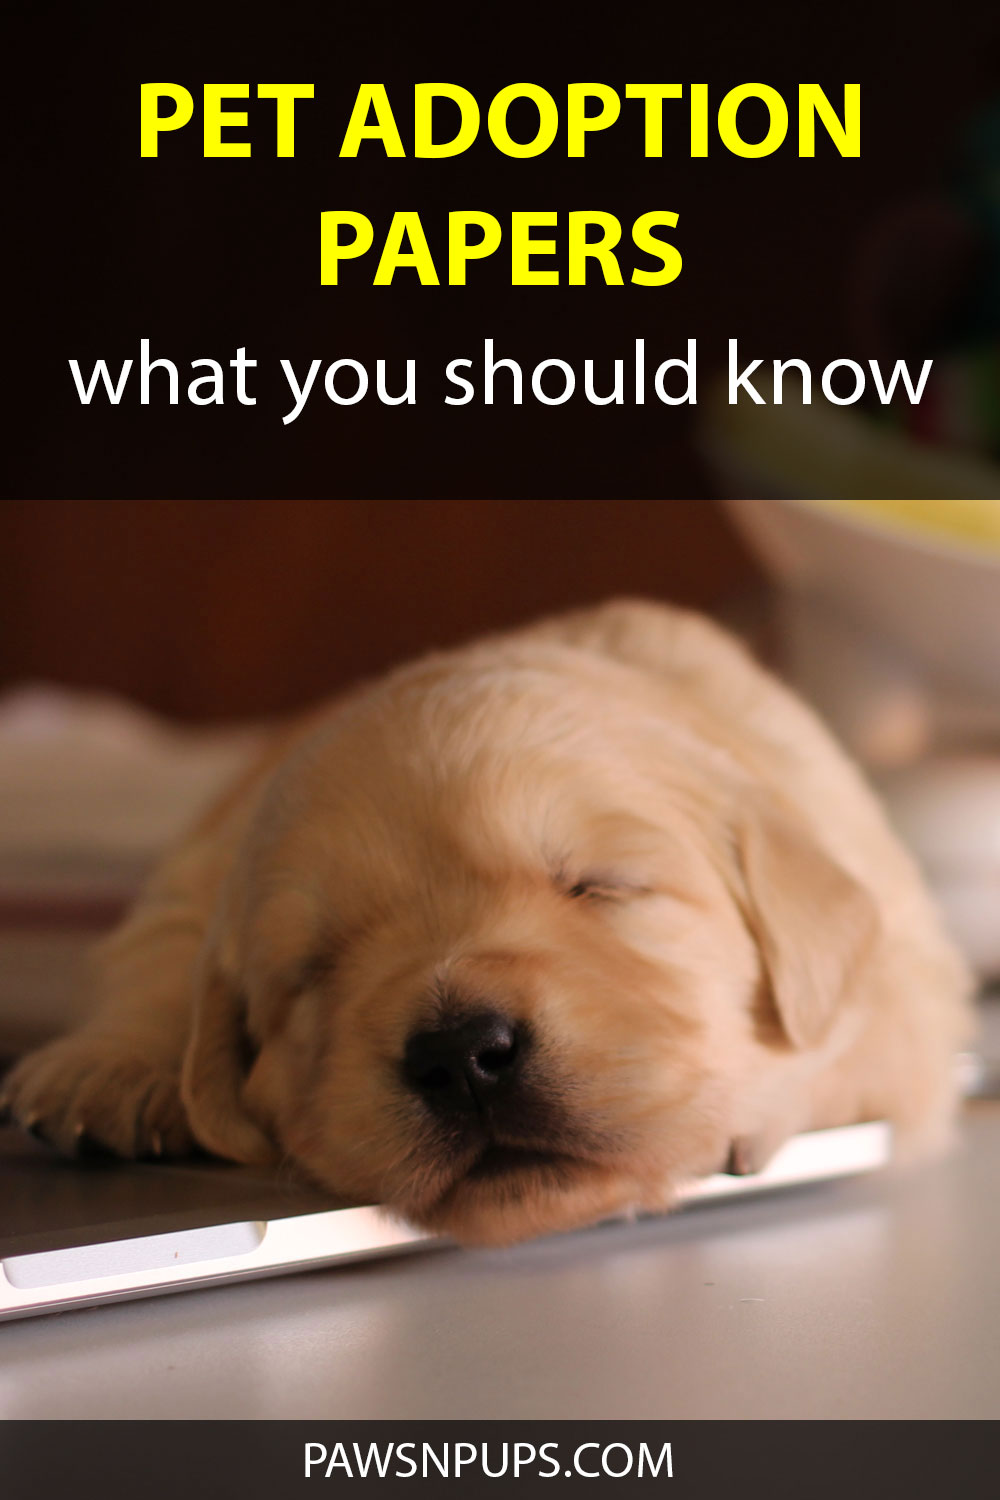 Pet Adoption Papers - What You Should Know - Golden Retriever puppy lying on laptop computer on a desk.